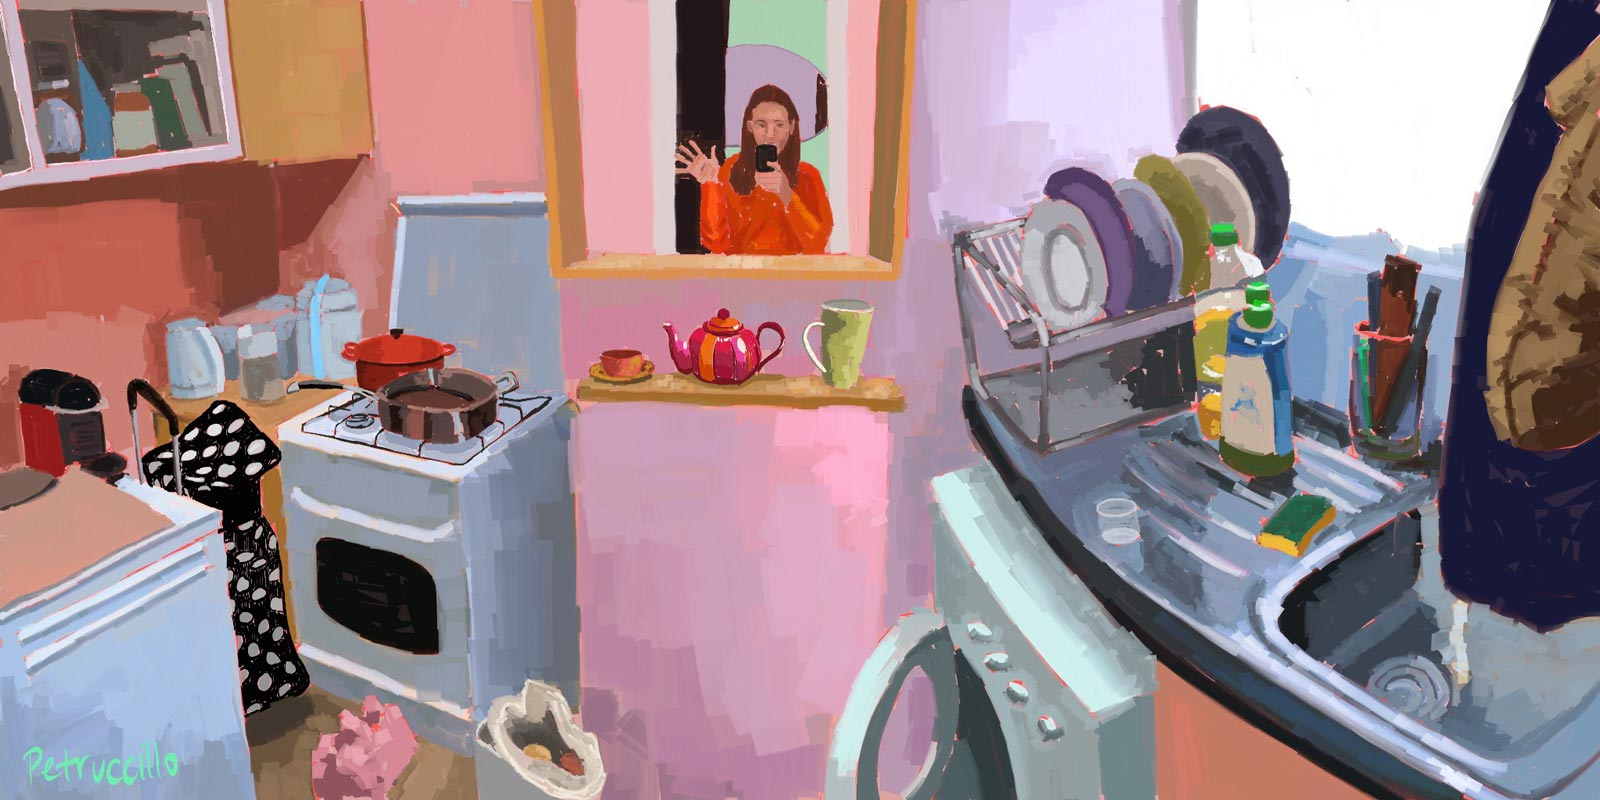 digital painting of the tiny pink kitchen in Strasbourg, France